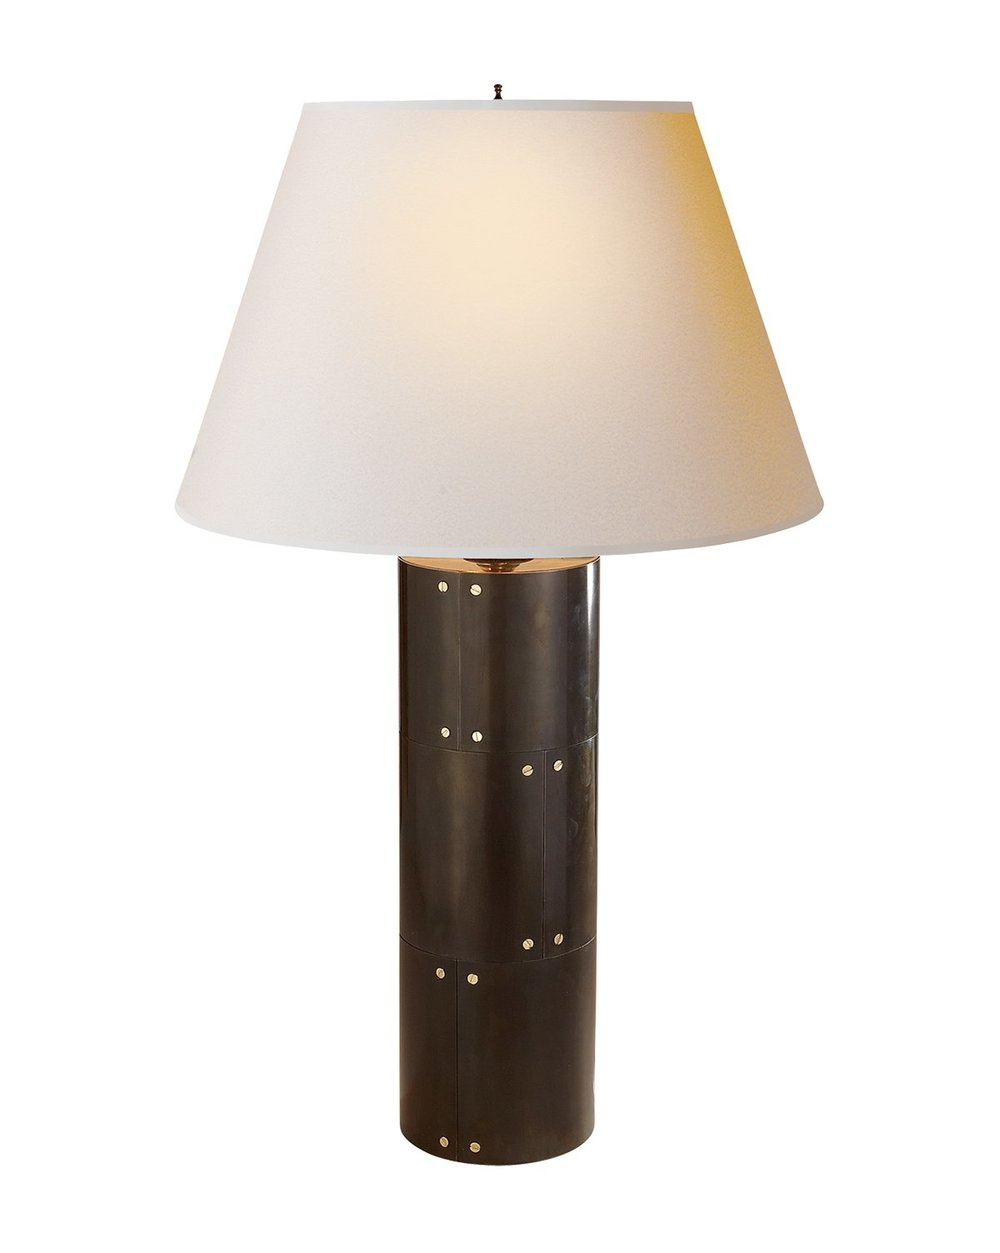 Yul_Table_Lamp_2.jpg